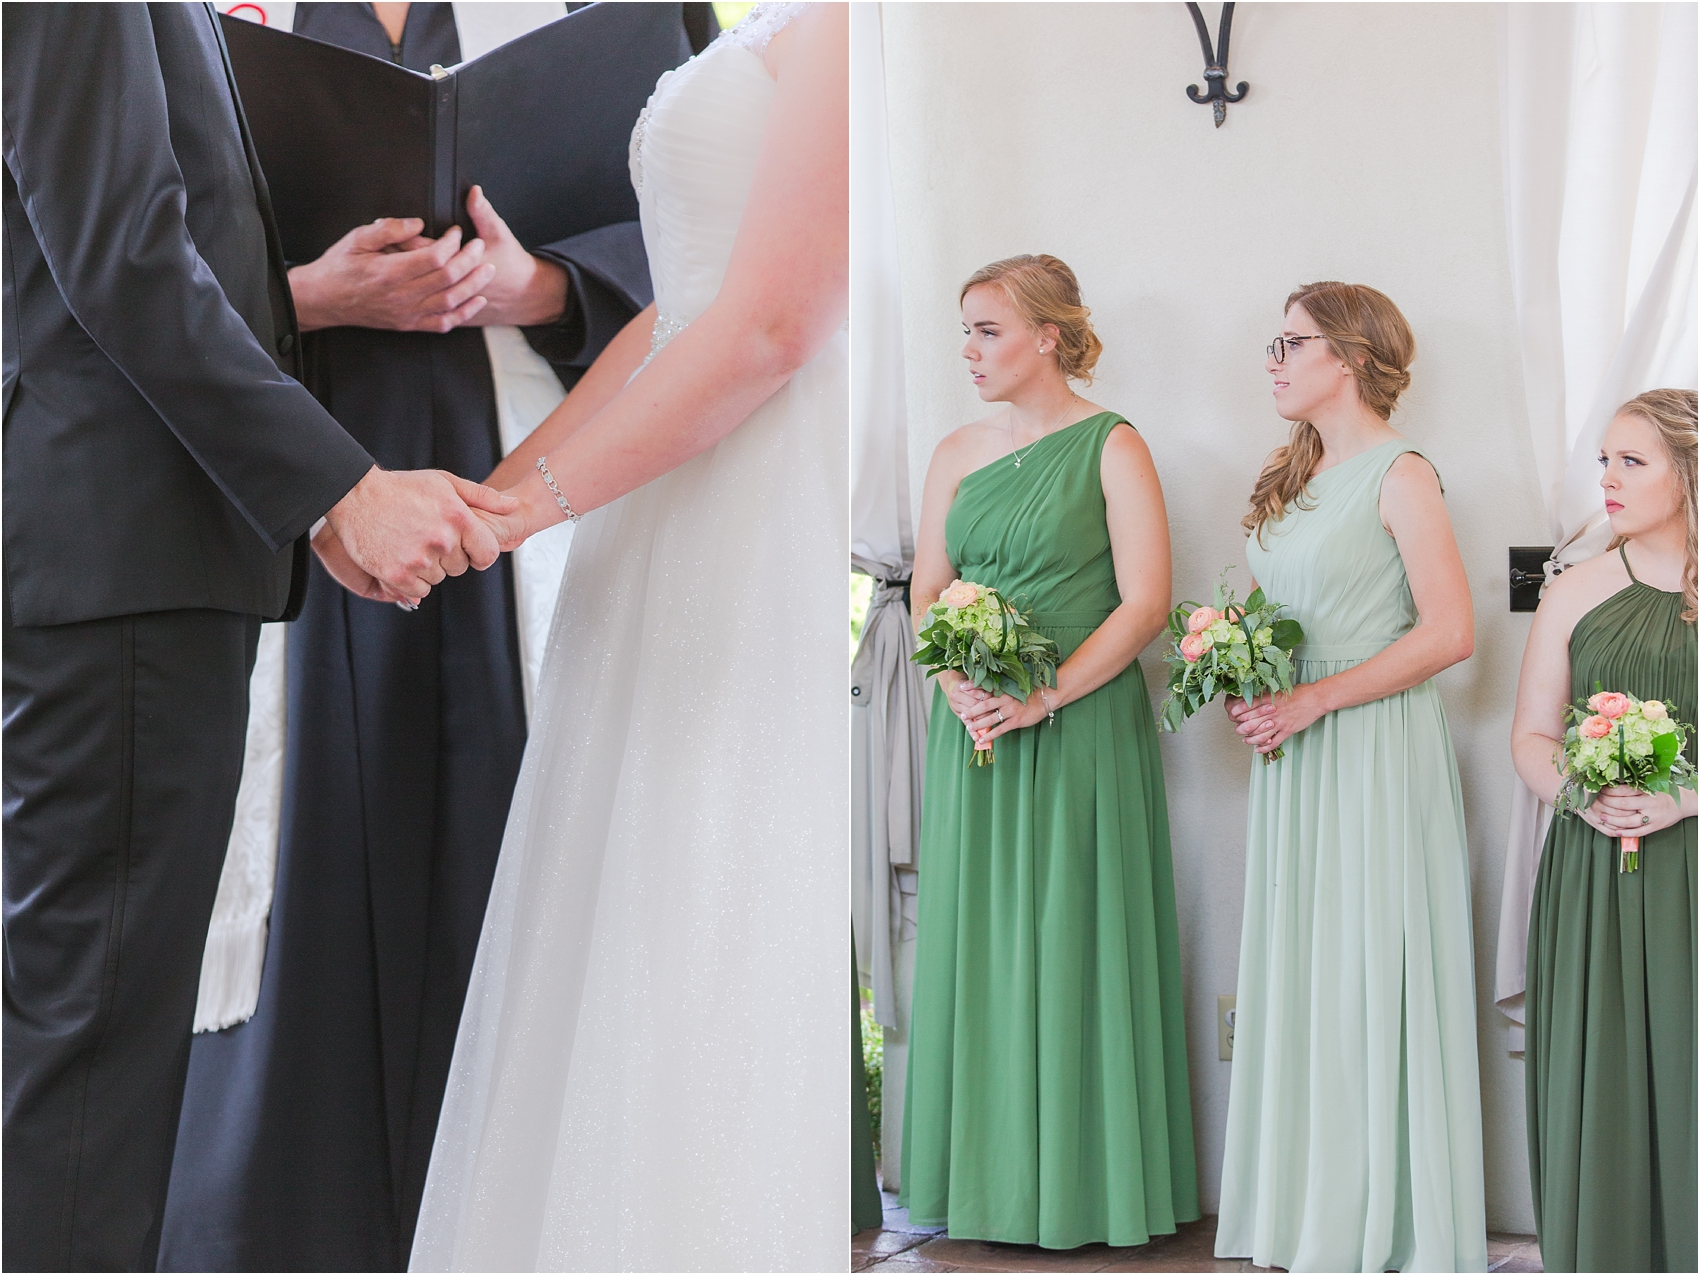 lord-of-the-rings-inspired-wedding-photos-at-crystal-gardens-in-howell-mi-by-courtney-carolyn-photography_0042.jpg